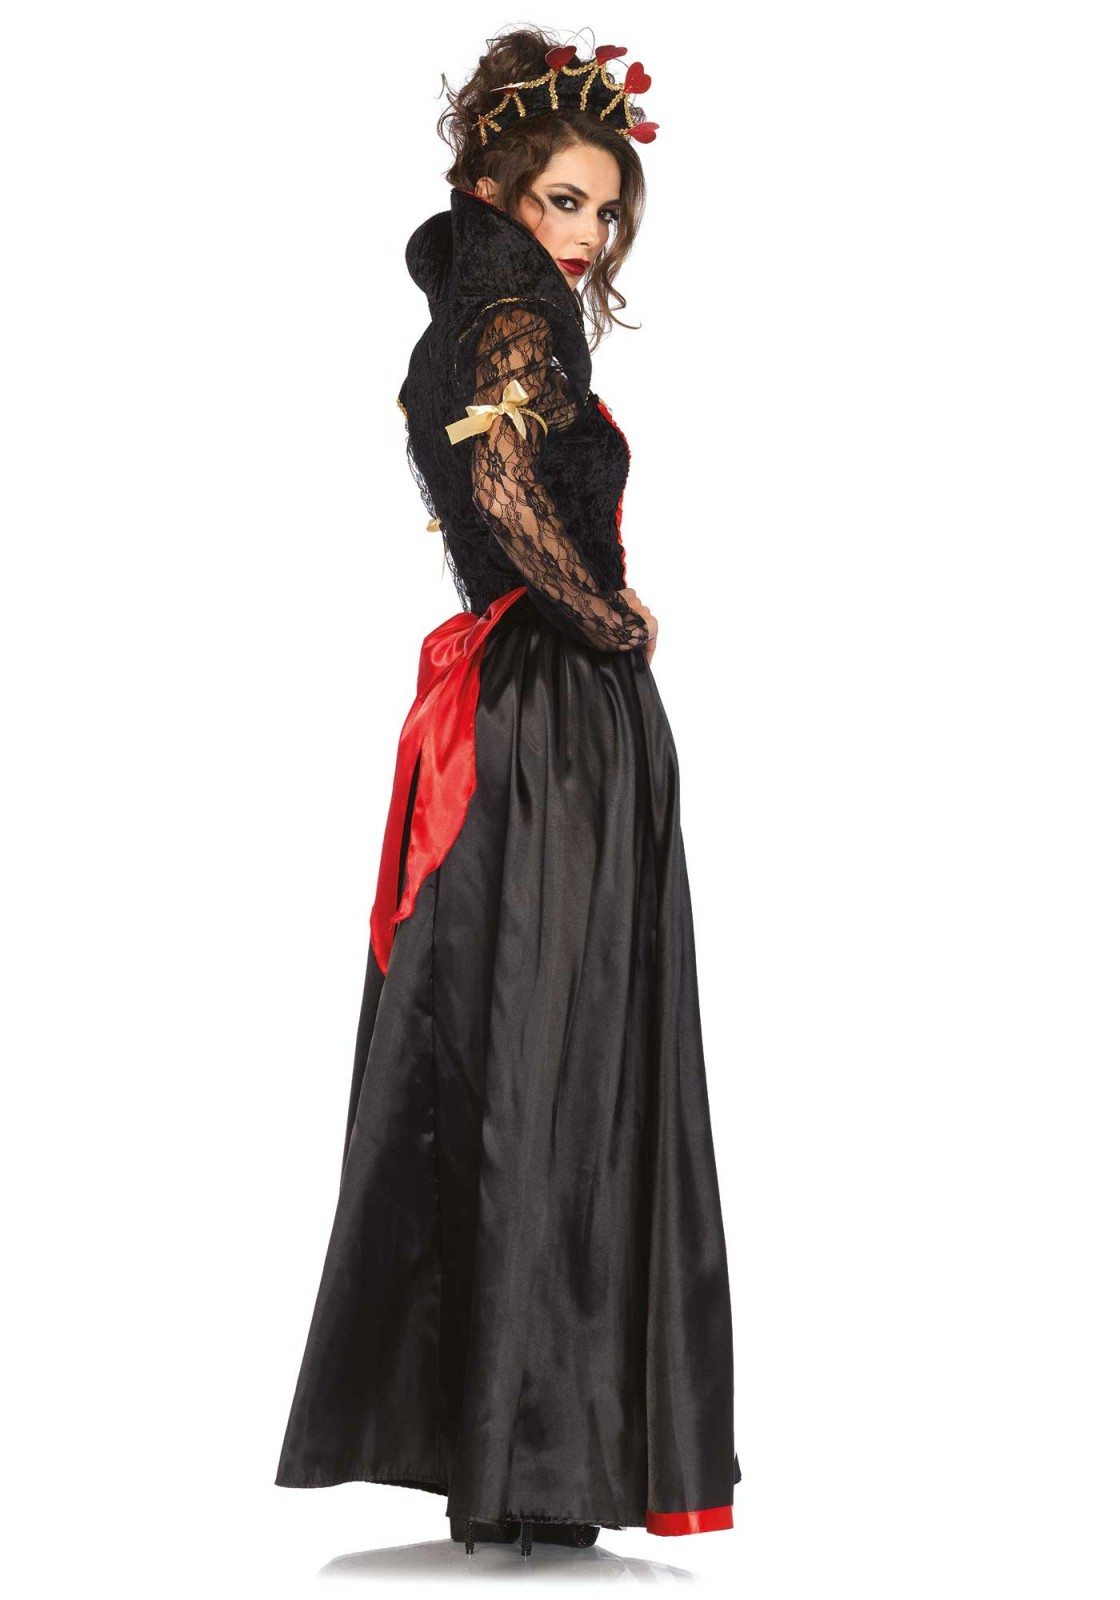 Fairytales do not exist. Or do they? Create your own story with this 2PC Wonderland costume. Includes a chevron striped long gown with lace sleeves and stay up collar and crown headband. Please take note that the wand is not included.